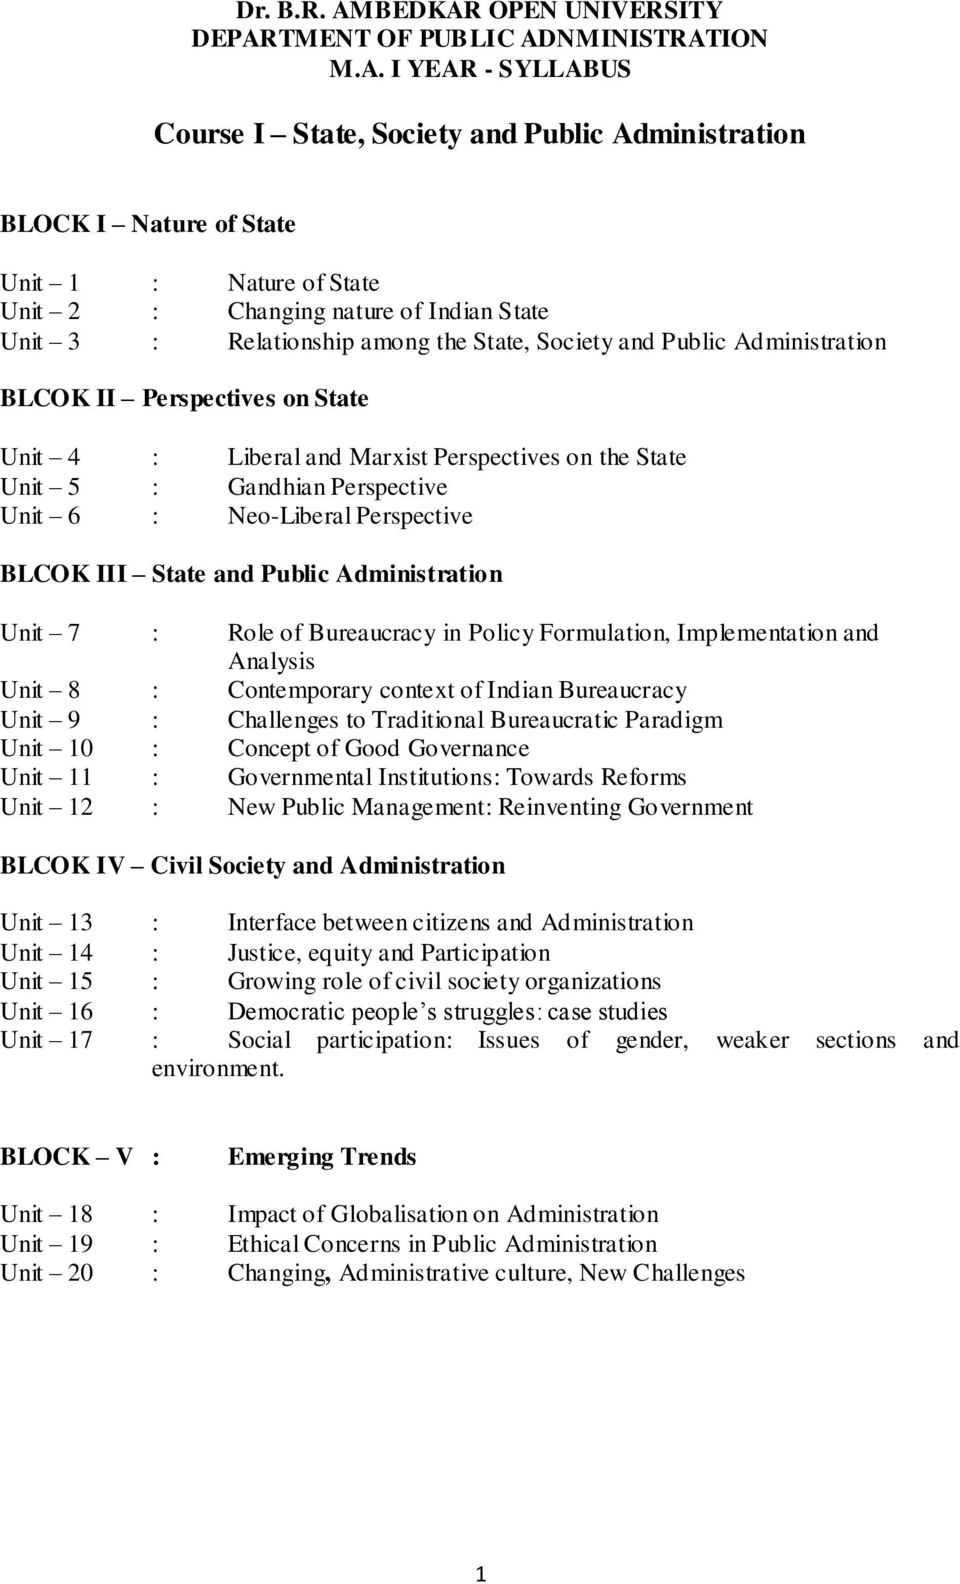 State and Public Administration Unit 7 : Role of Bureaucracy in Policy Formulation, Implementation and Analysis Unit 8 : Contemporary context of Indian Bureaucracy Unit 9 : Challenges to Traditional